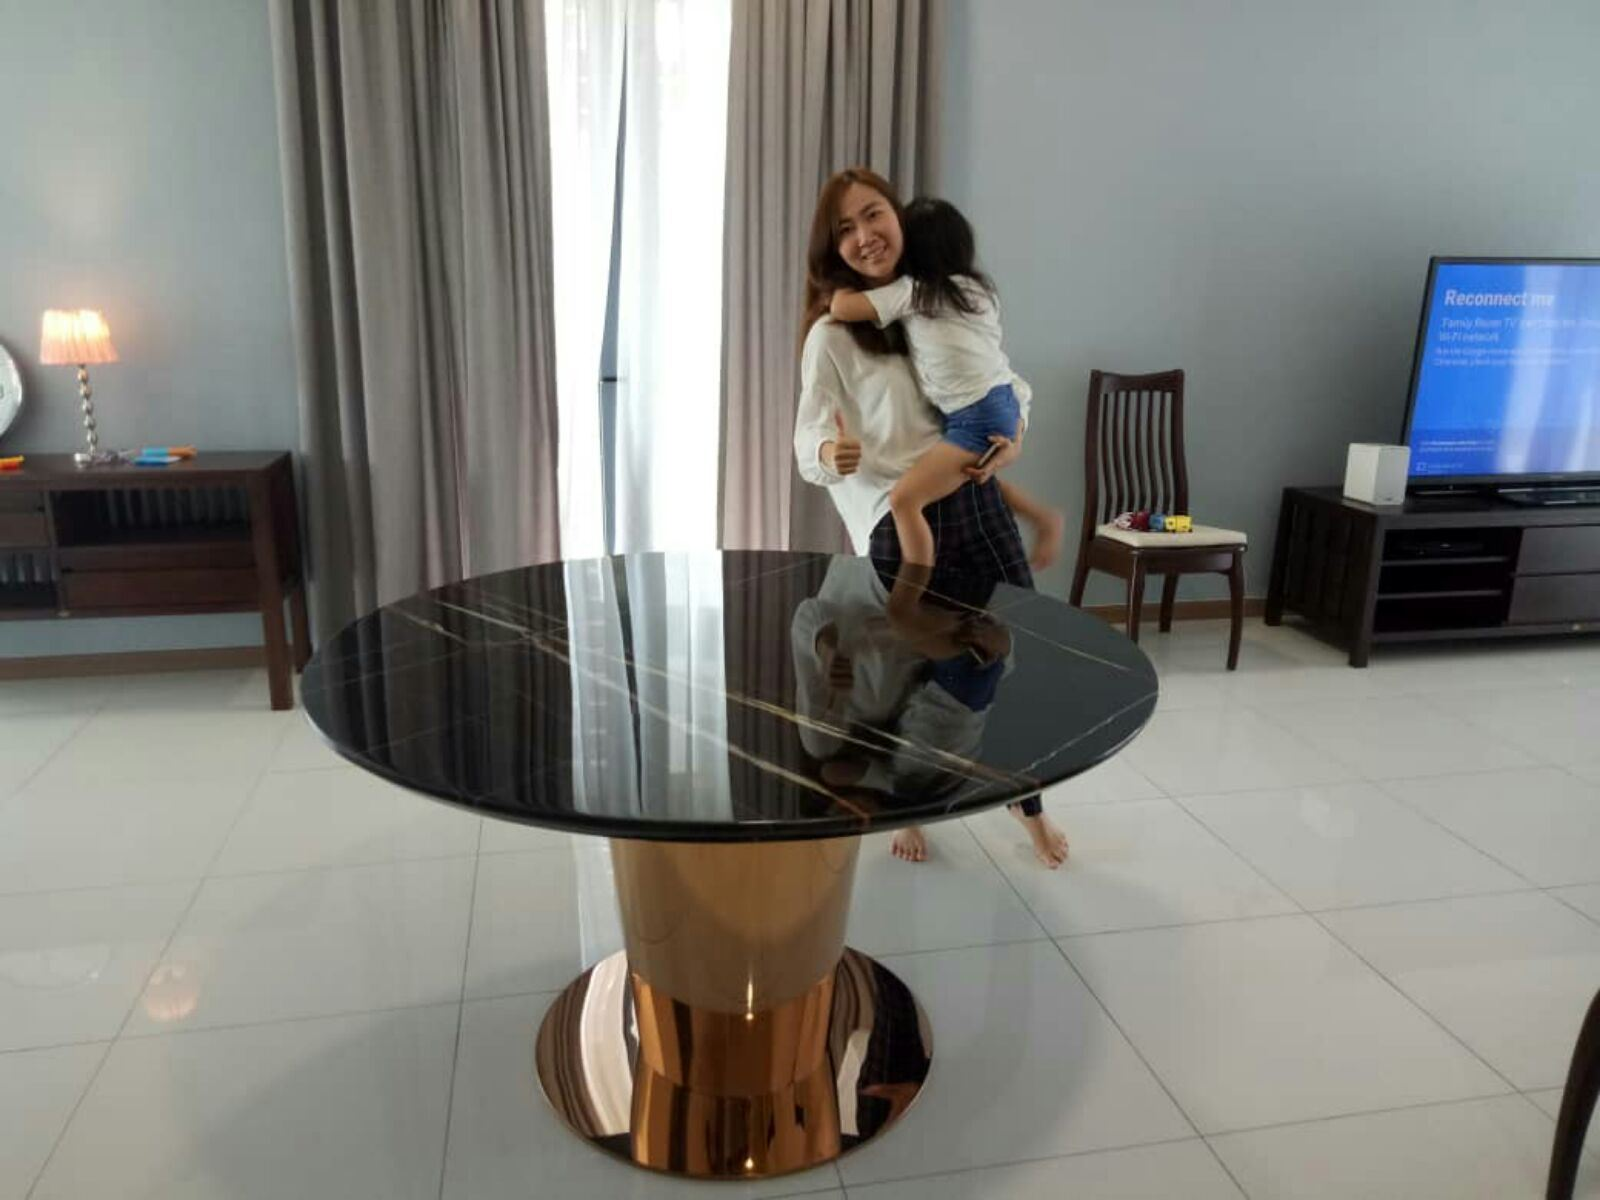 Black Marble Dining Table From Tunisia - St. Luarent Marble